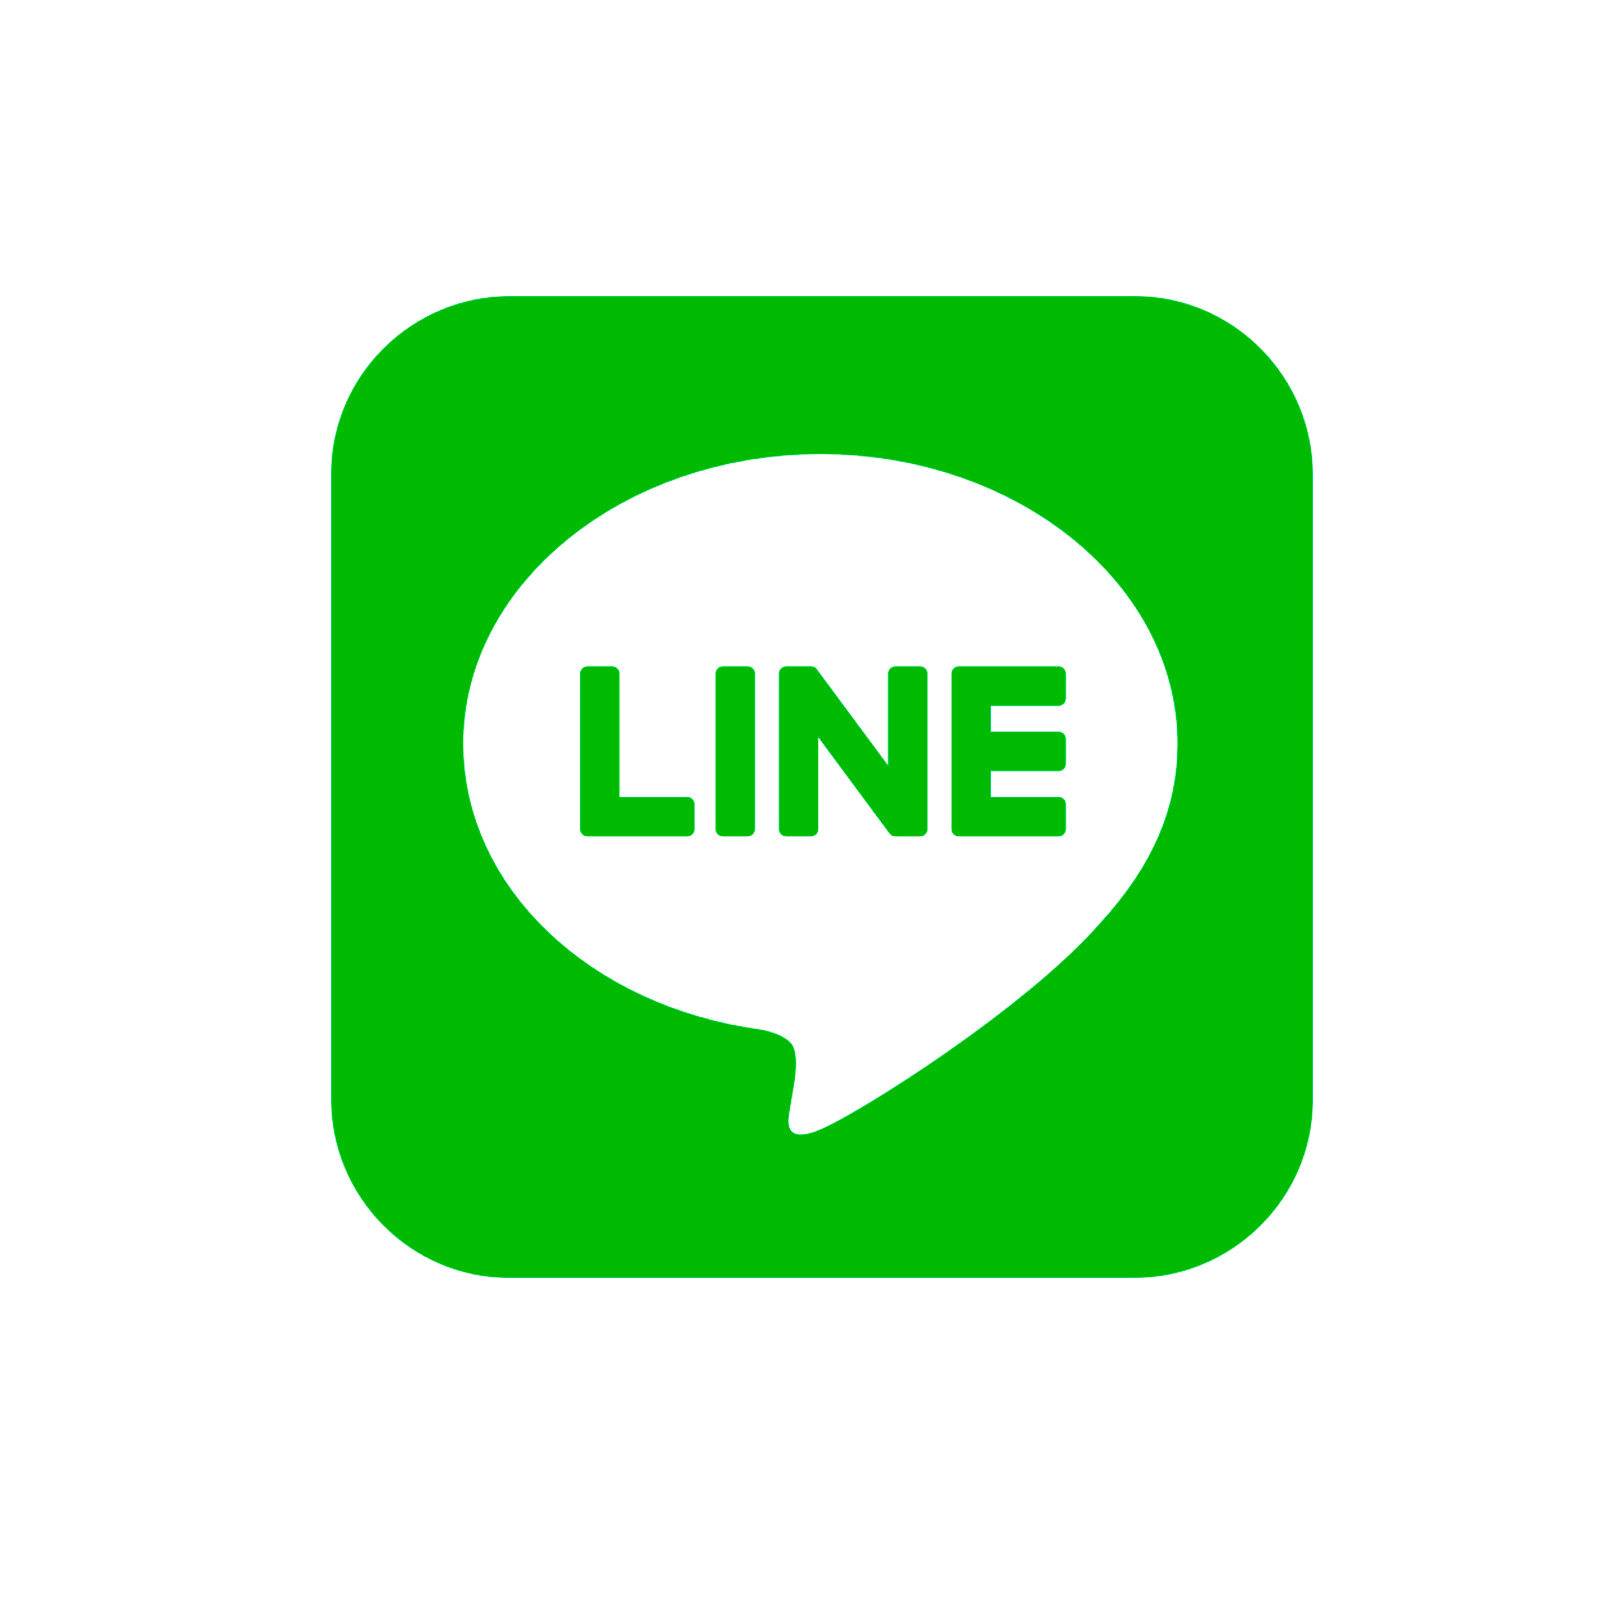 LINE is a globally available messaging social network that enables you to share photos, videos, text messages and even audio messages or files. In addition, it allows you to make voice and video calls at any time of the day.